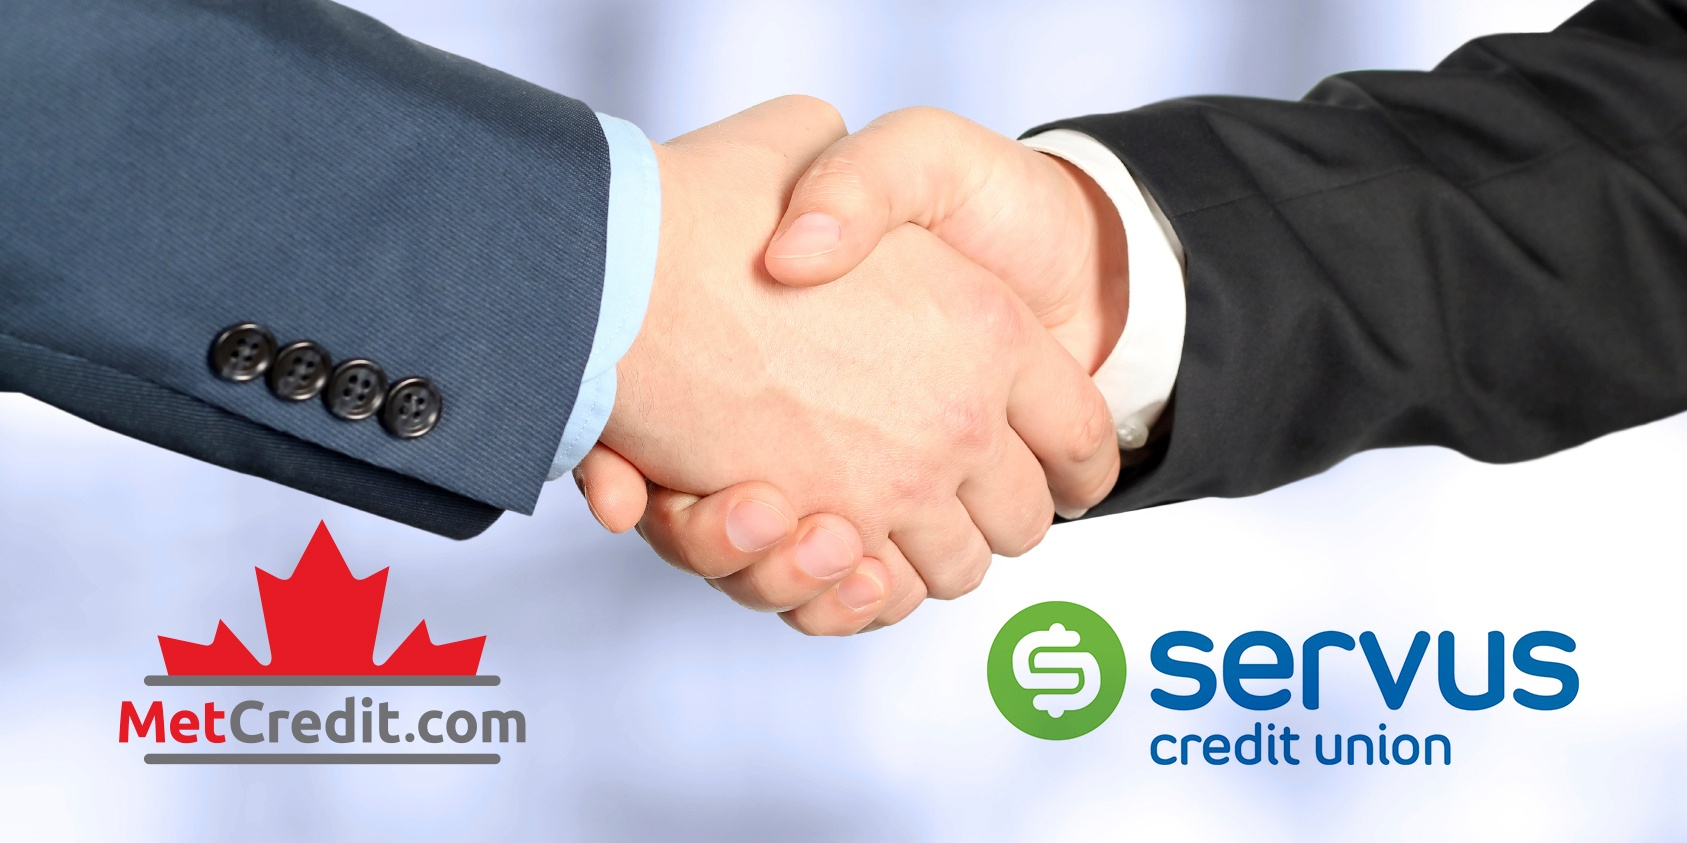 metcredit-servus-deal.jpg